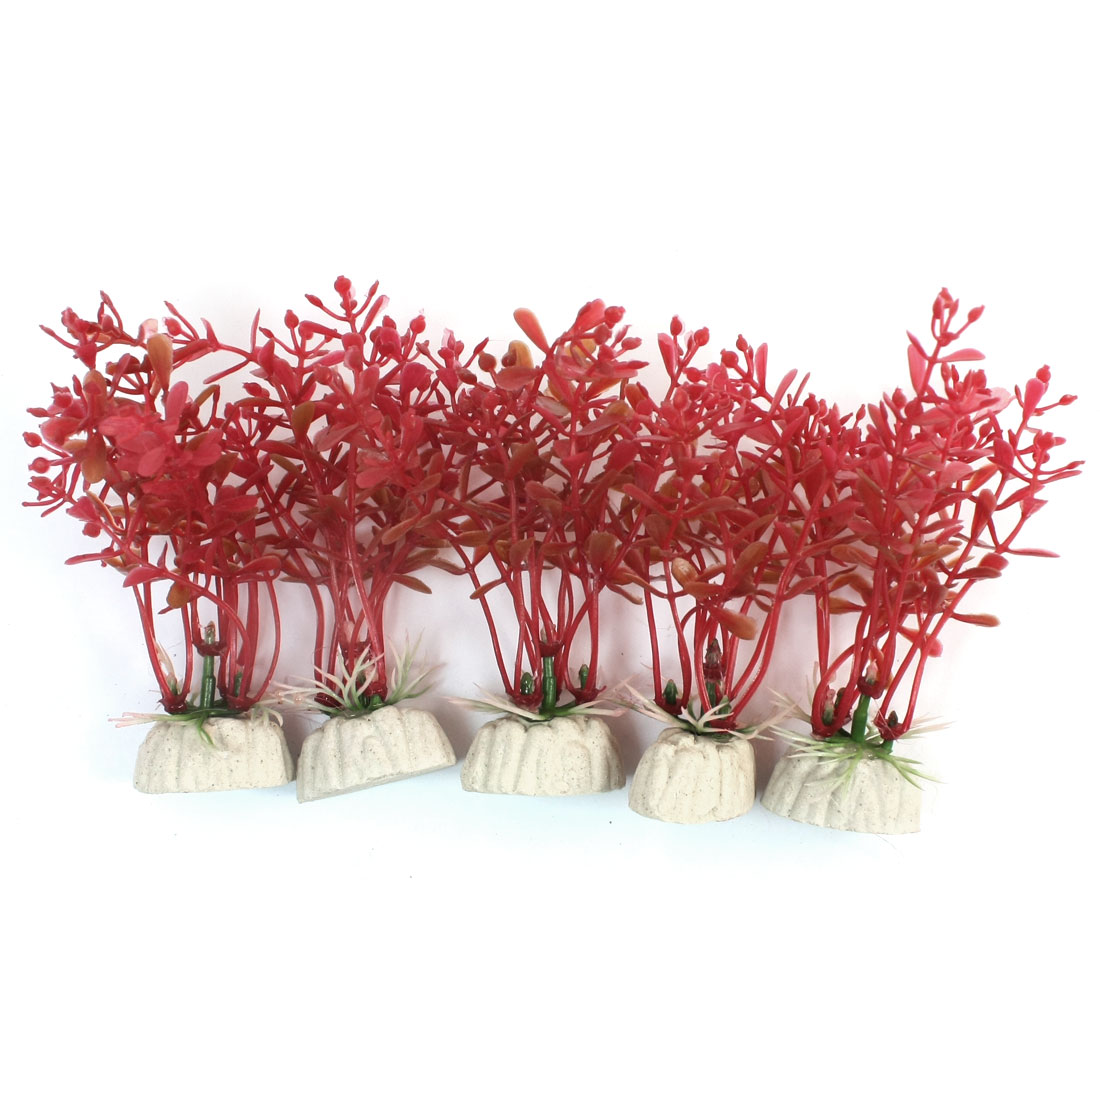 5Pcs 10cm High Red Plastic Water Plant w Ceramic Base for Fish Tank